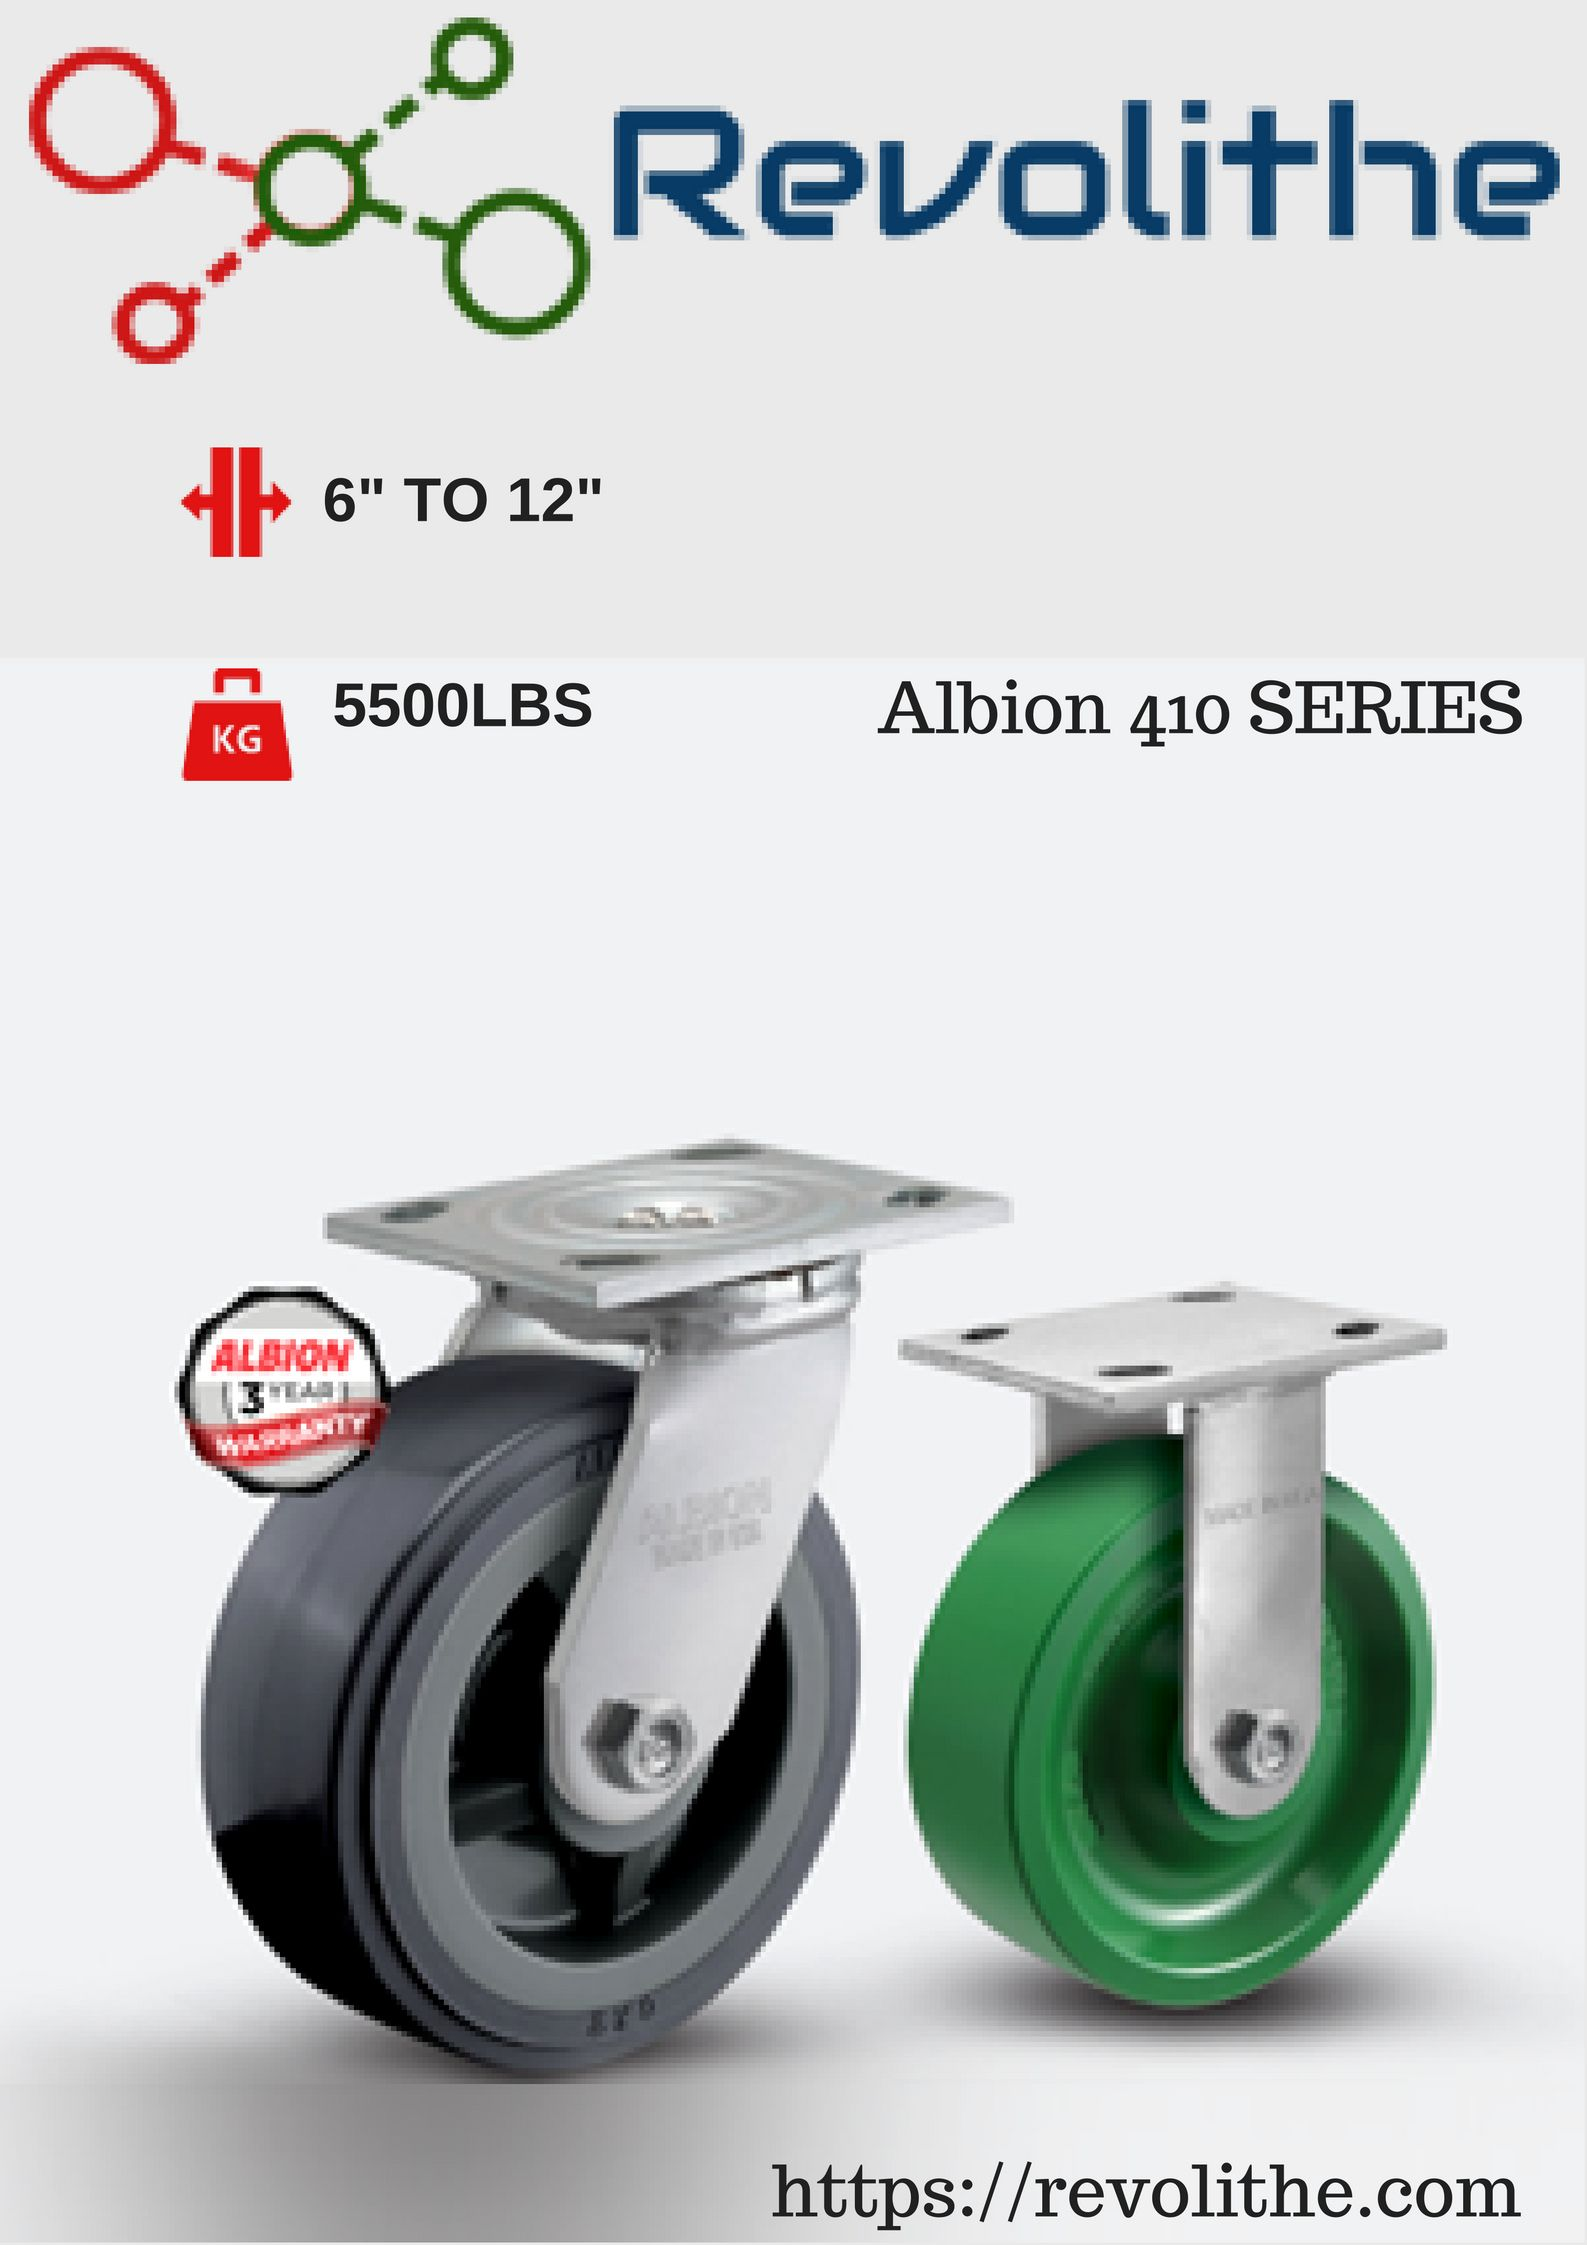 64460e68a546 Albion casters and wheels are designed for any type of load requirement and  application in almost all industries from furniture wheels, industrial  casters ...